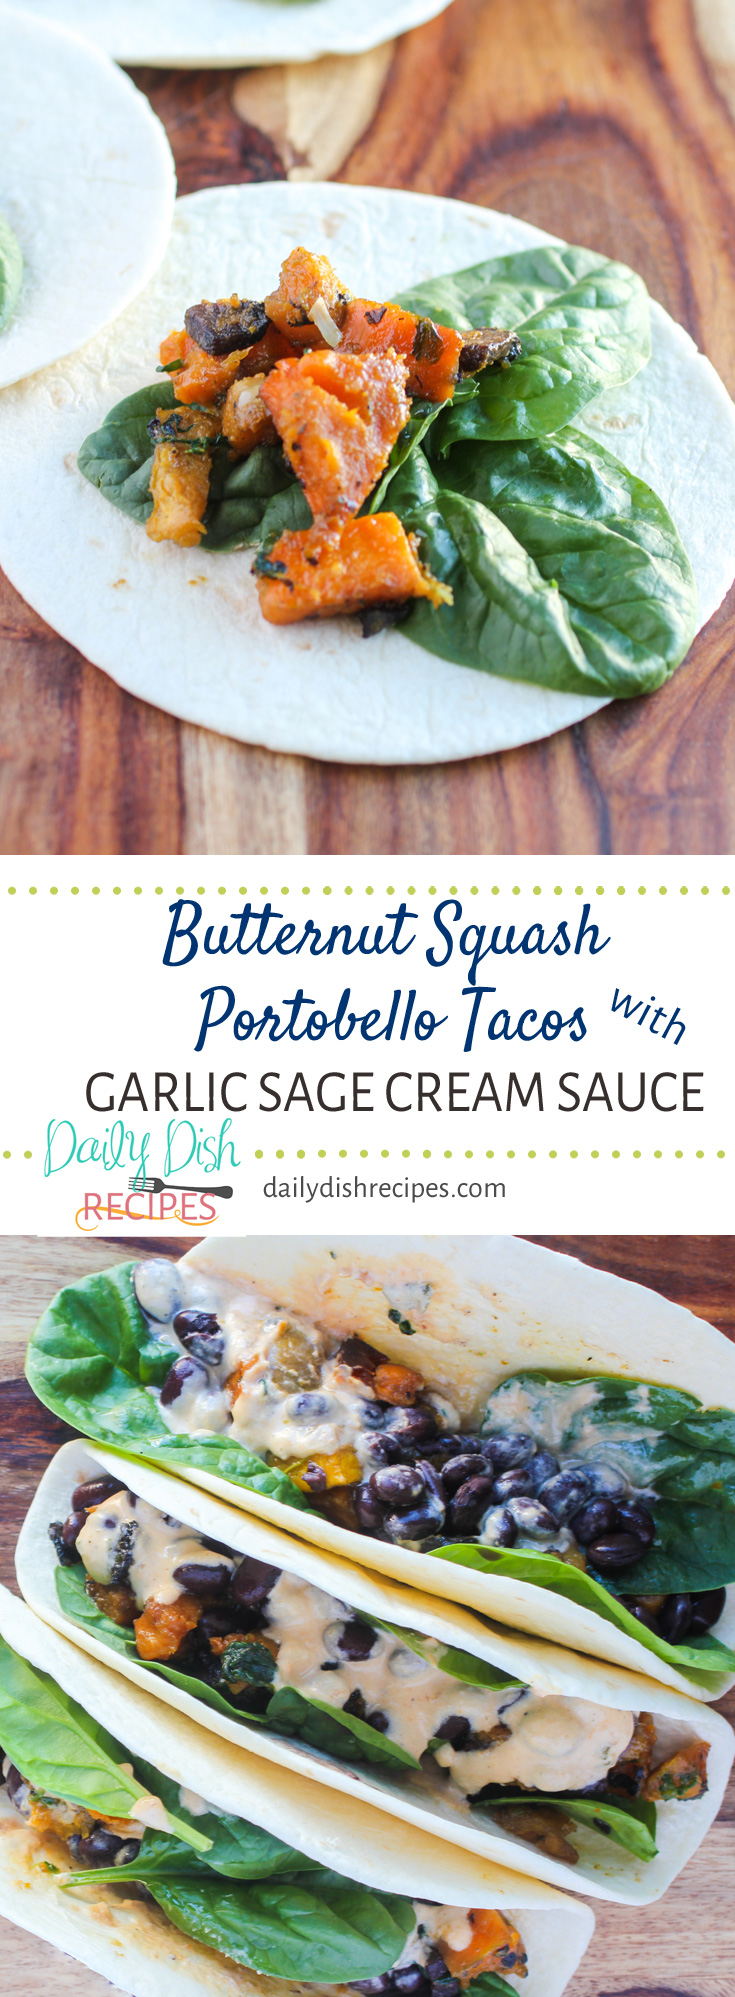 Butternut Squash Portobello Tacos with Garlic Sage Cream Sauce are the perfect easy date night recipe - savory and so full of flavor. Pairs great with Netflix and wine.